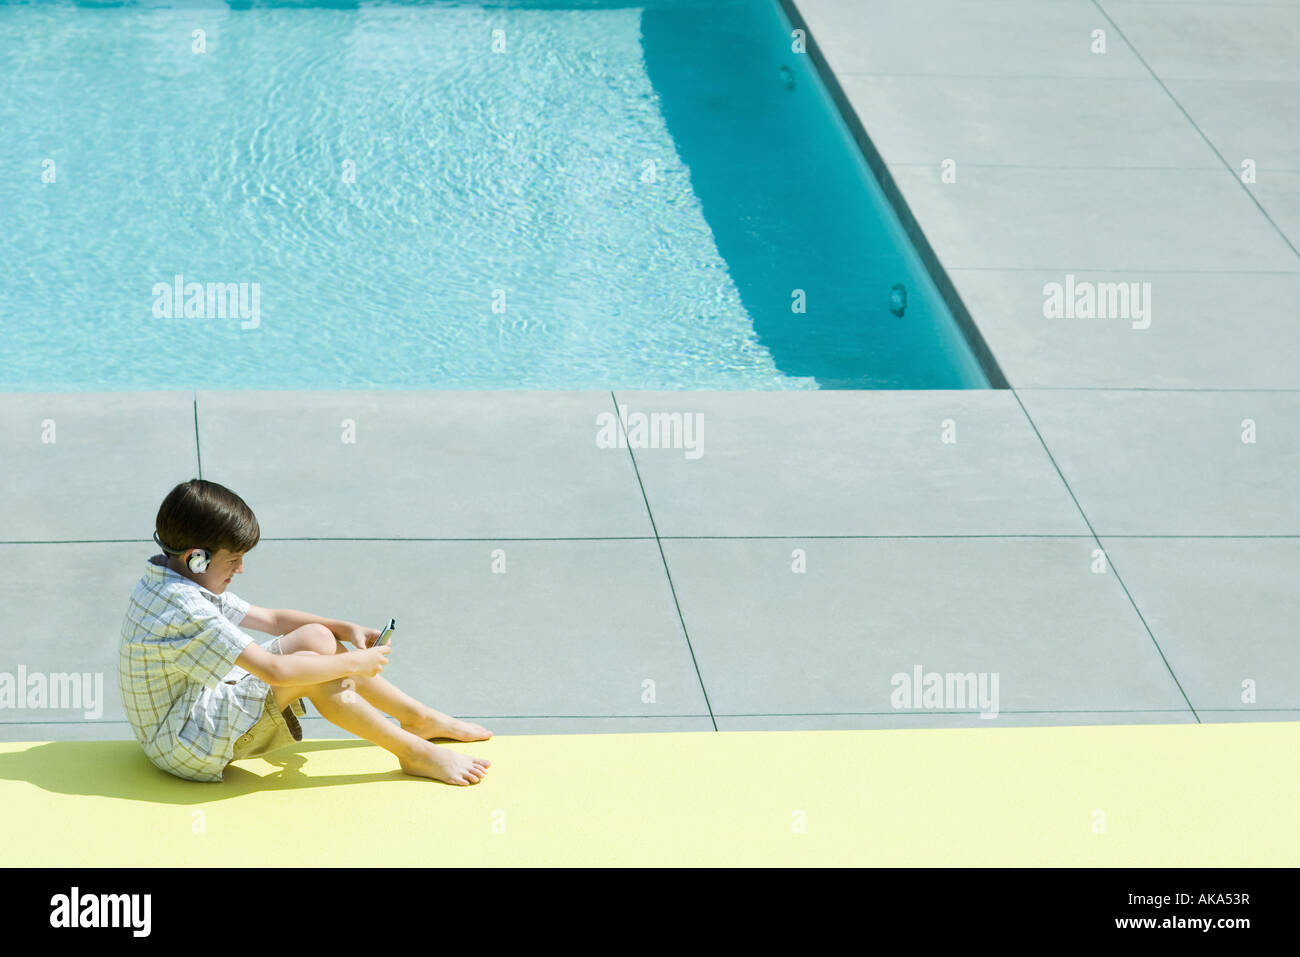 Boy sitting on the ground next to swimming pool, using handheld electronic device, wearing headphones - Stock Image